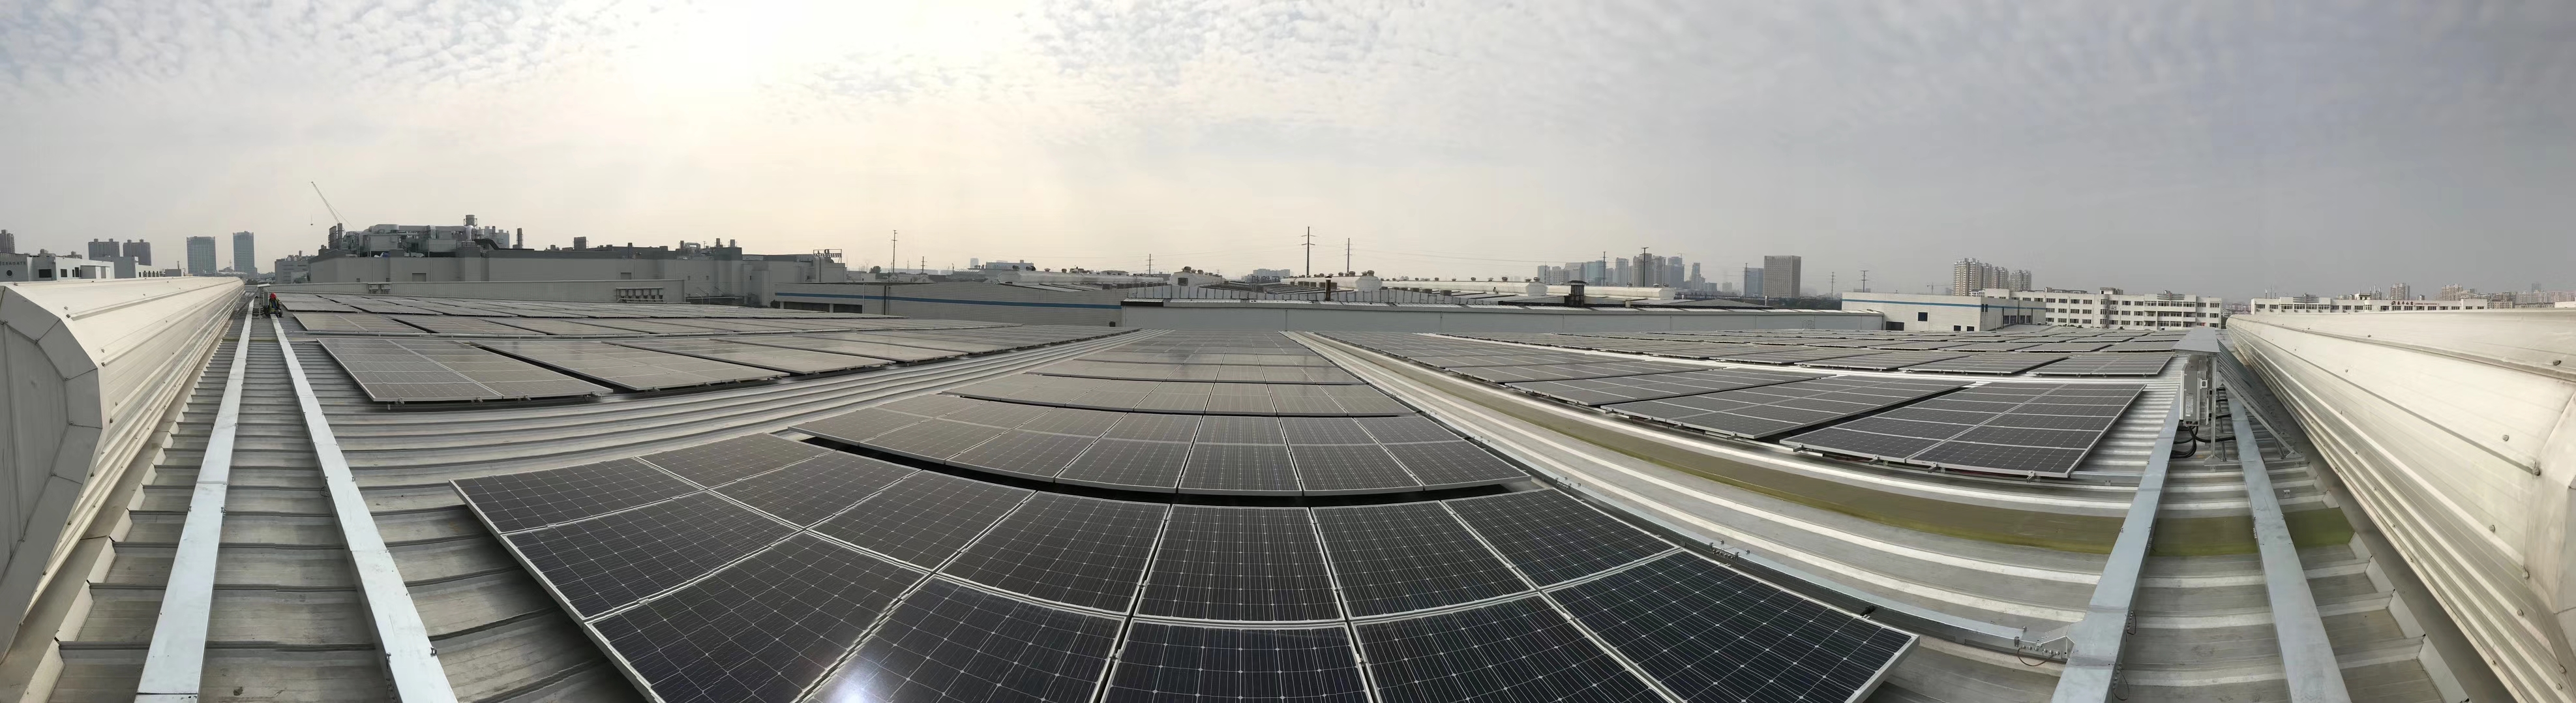 800KW Photovoltaic Power Station